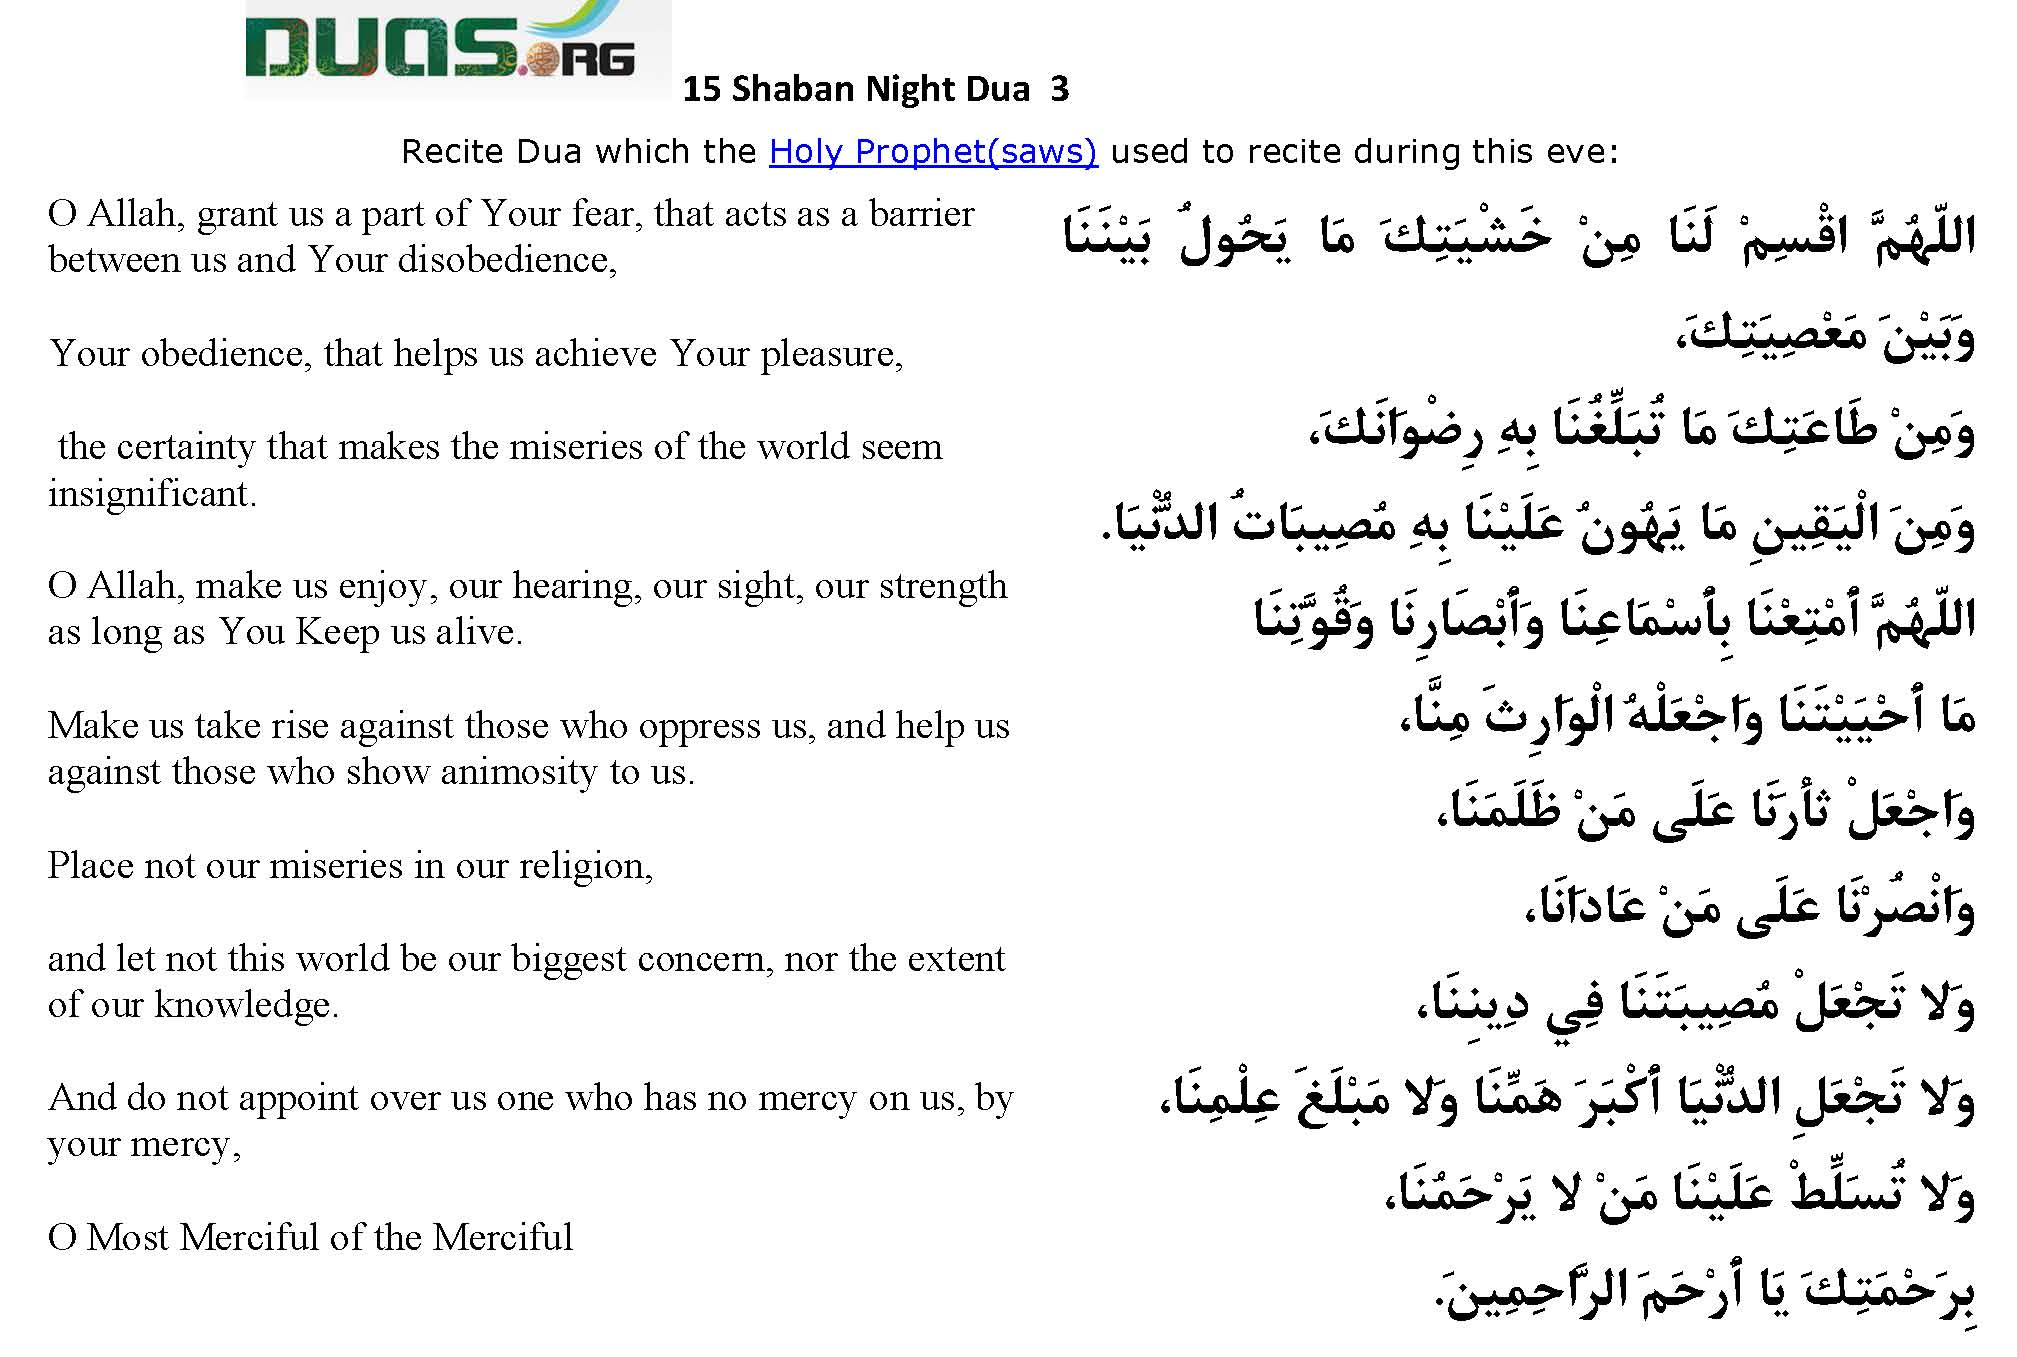 15th Shaban Amaal - night of baraat